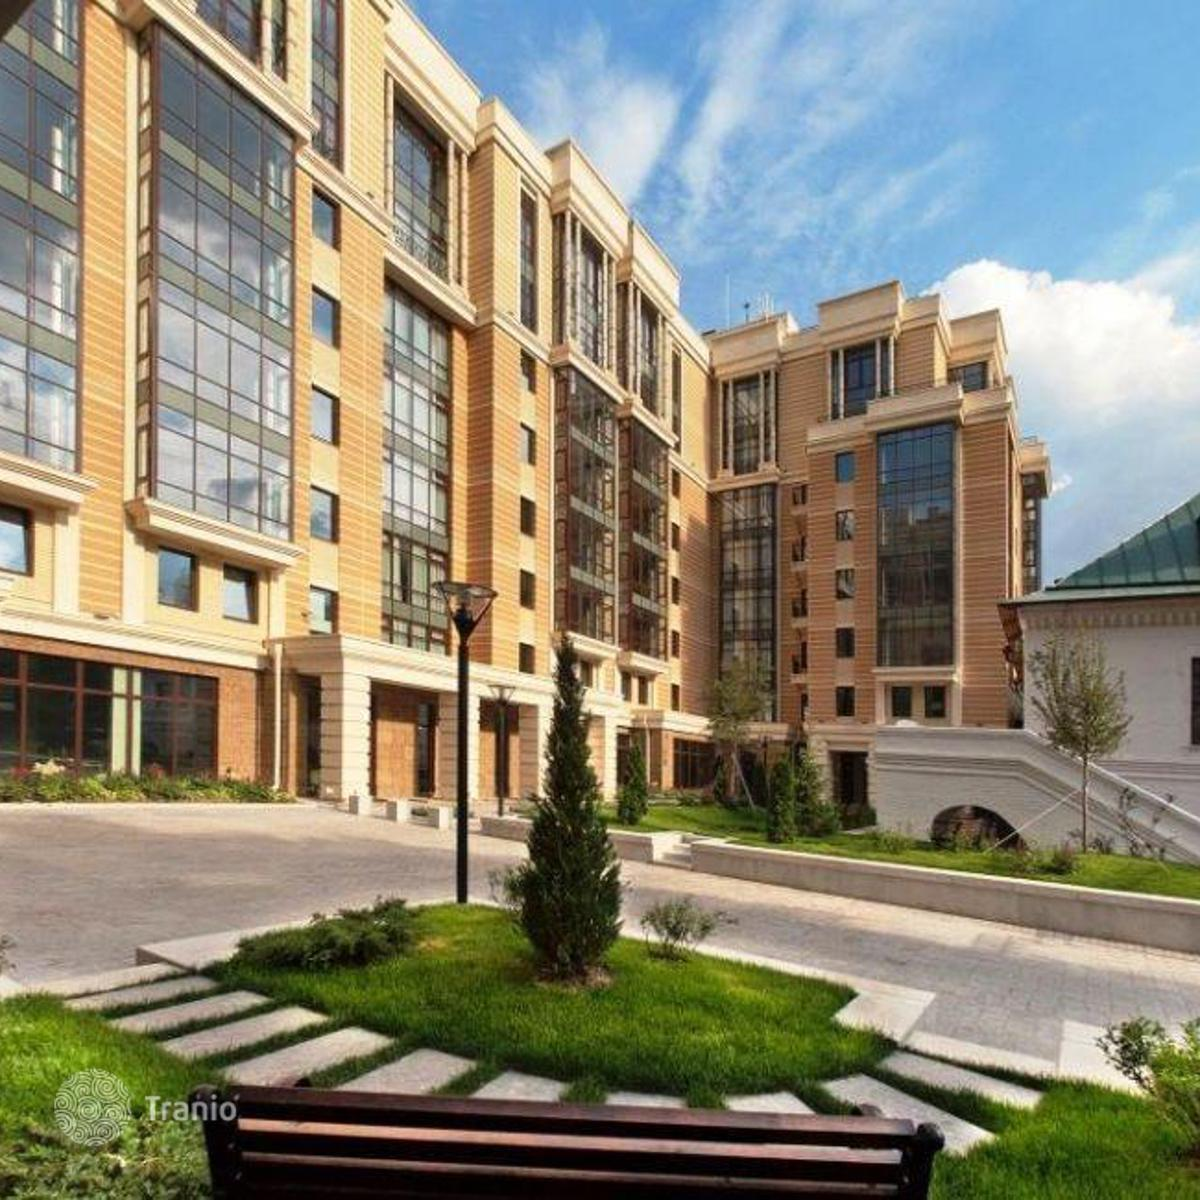 Apartment Rentals San Francisco Russian Hill: Listing #575948 In Moscow City, Russia